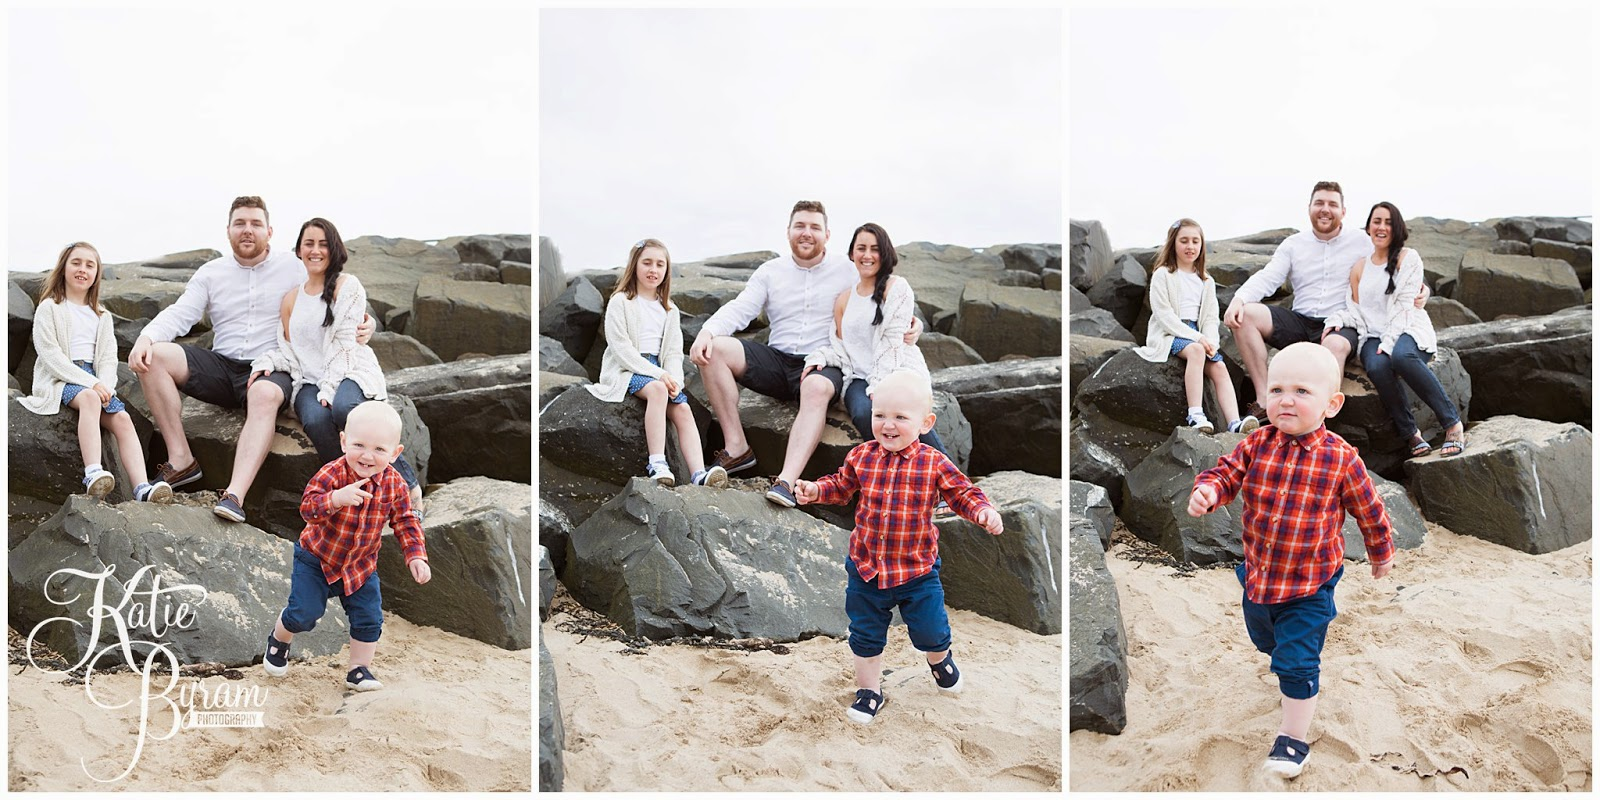 whitley bay wedding, whitley bay pre-wedding shoot, whitley bay engagement, st marys lighthouse wedding, katie byram photography, tynemouth wedding